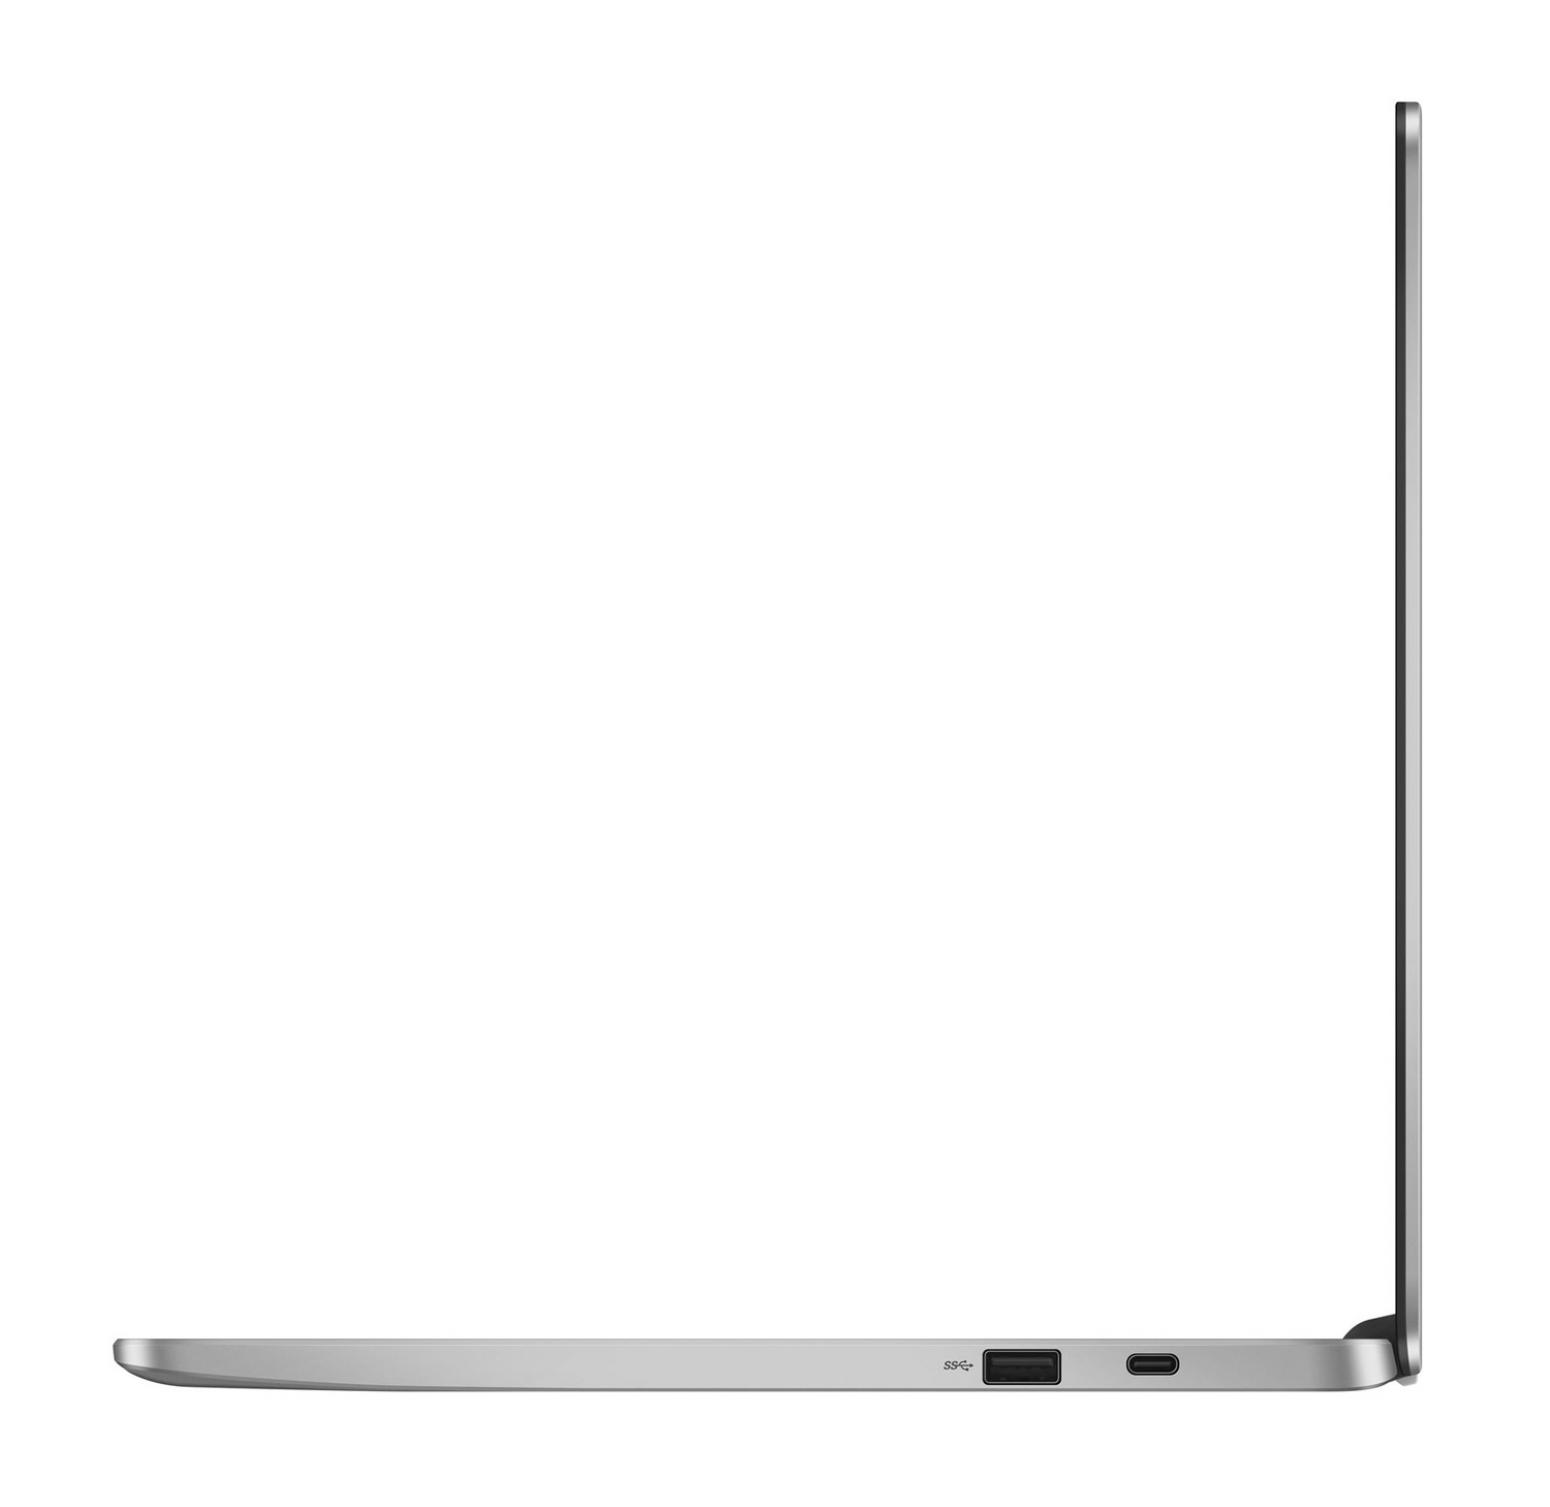 Ordinateur portable Asus Chromebook C423NA-BV0047 Argent - (Chrome OS) - photo 9